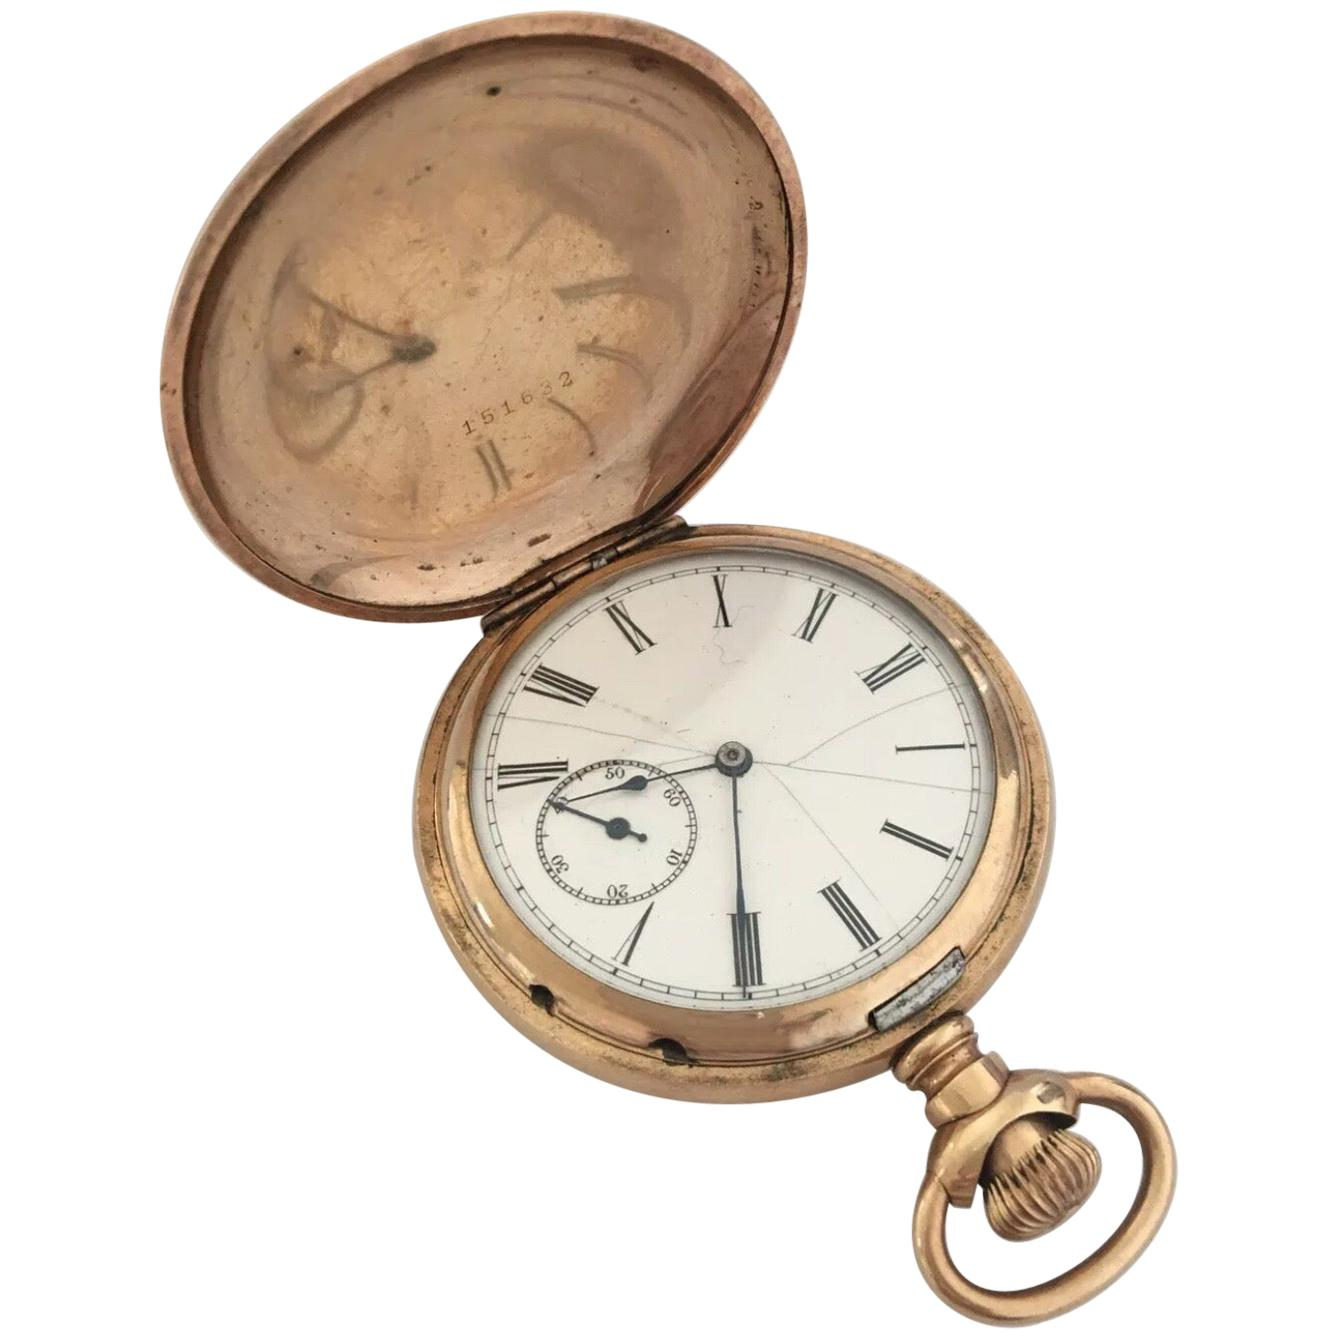 Antique Gold-Plated Full Hunter Cased Pocket Watch Signed Illinois Watch Case Co